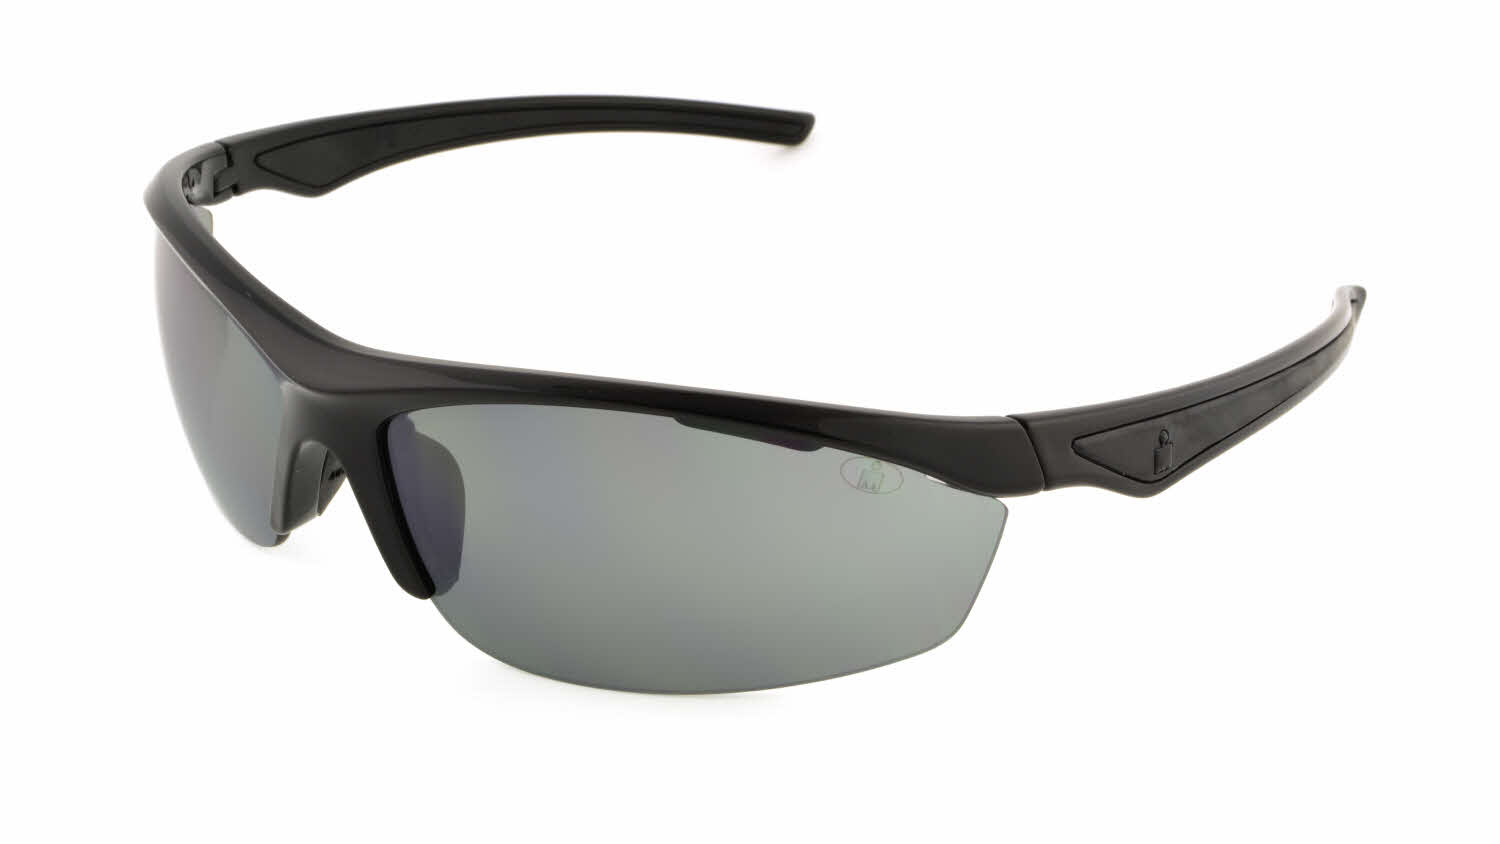 IronMan Ready Sunglasses